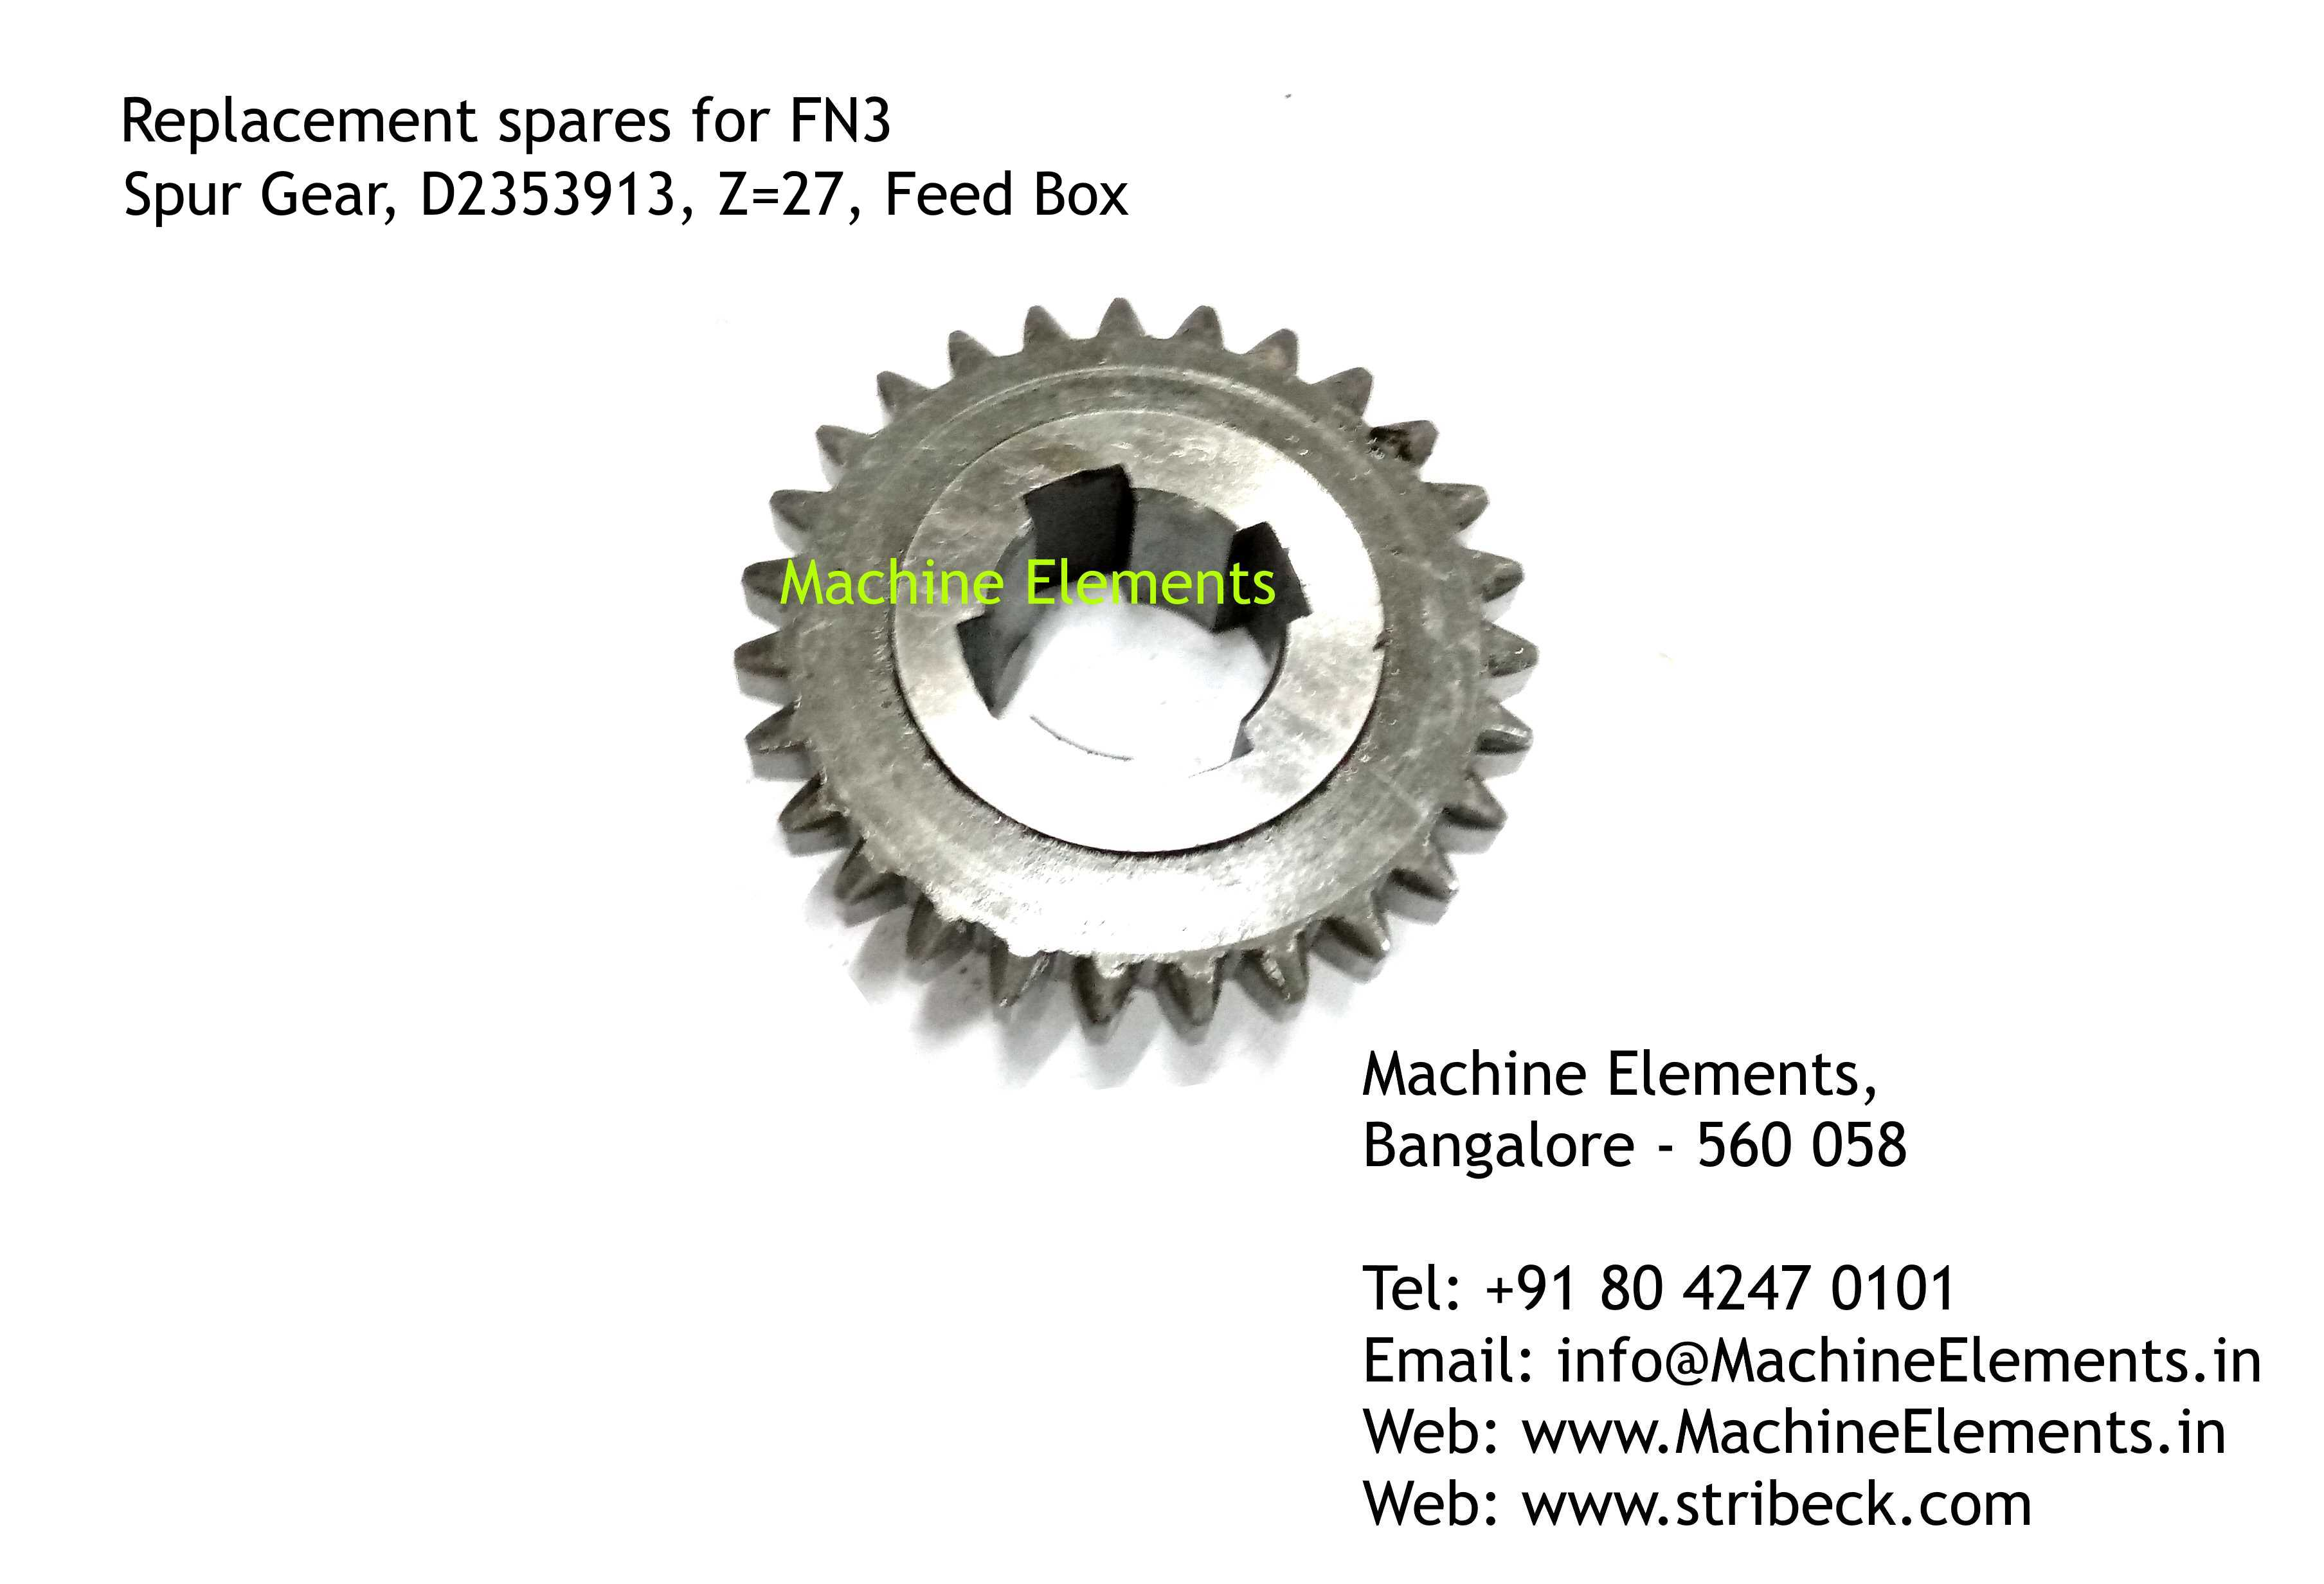 Spur Gear, D2353913, Z=27, Feed Box